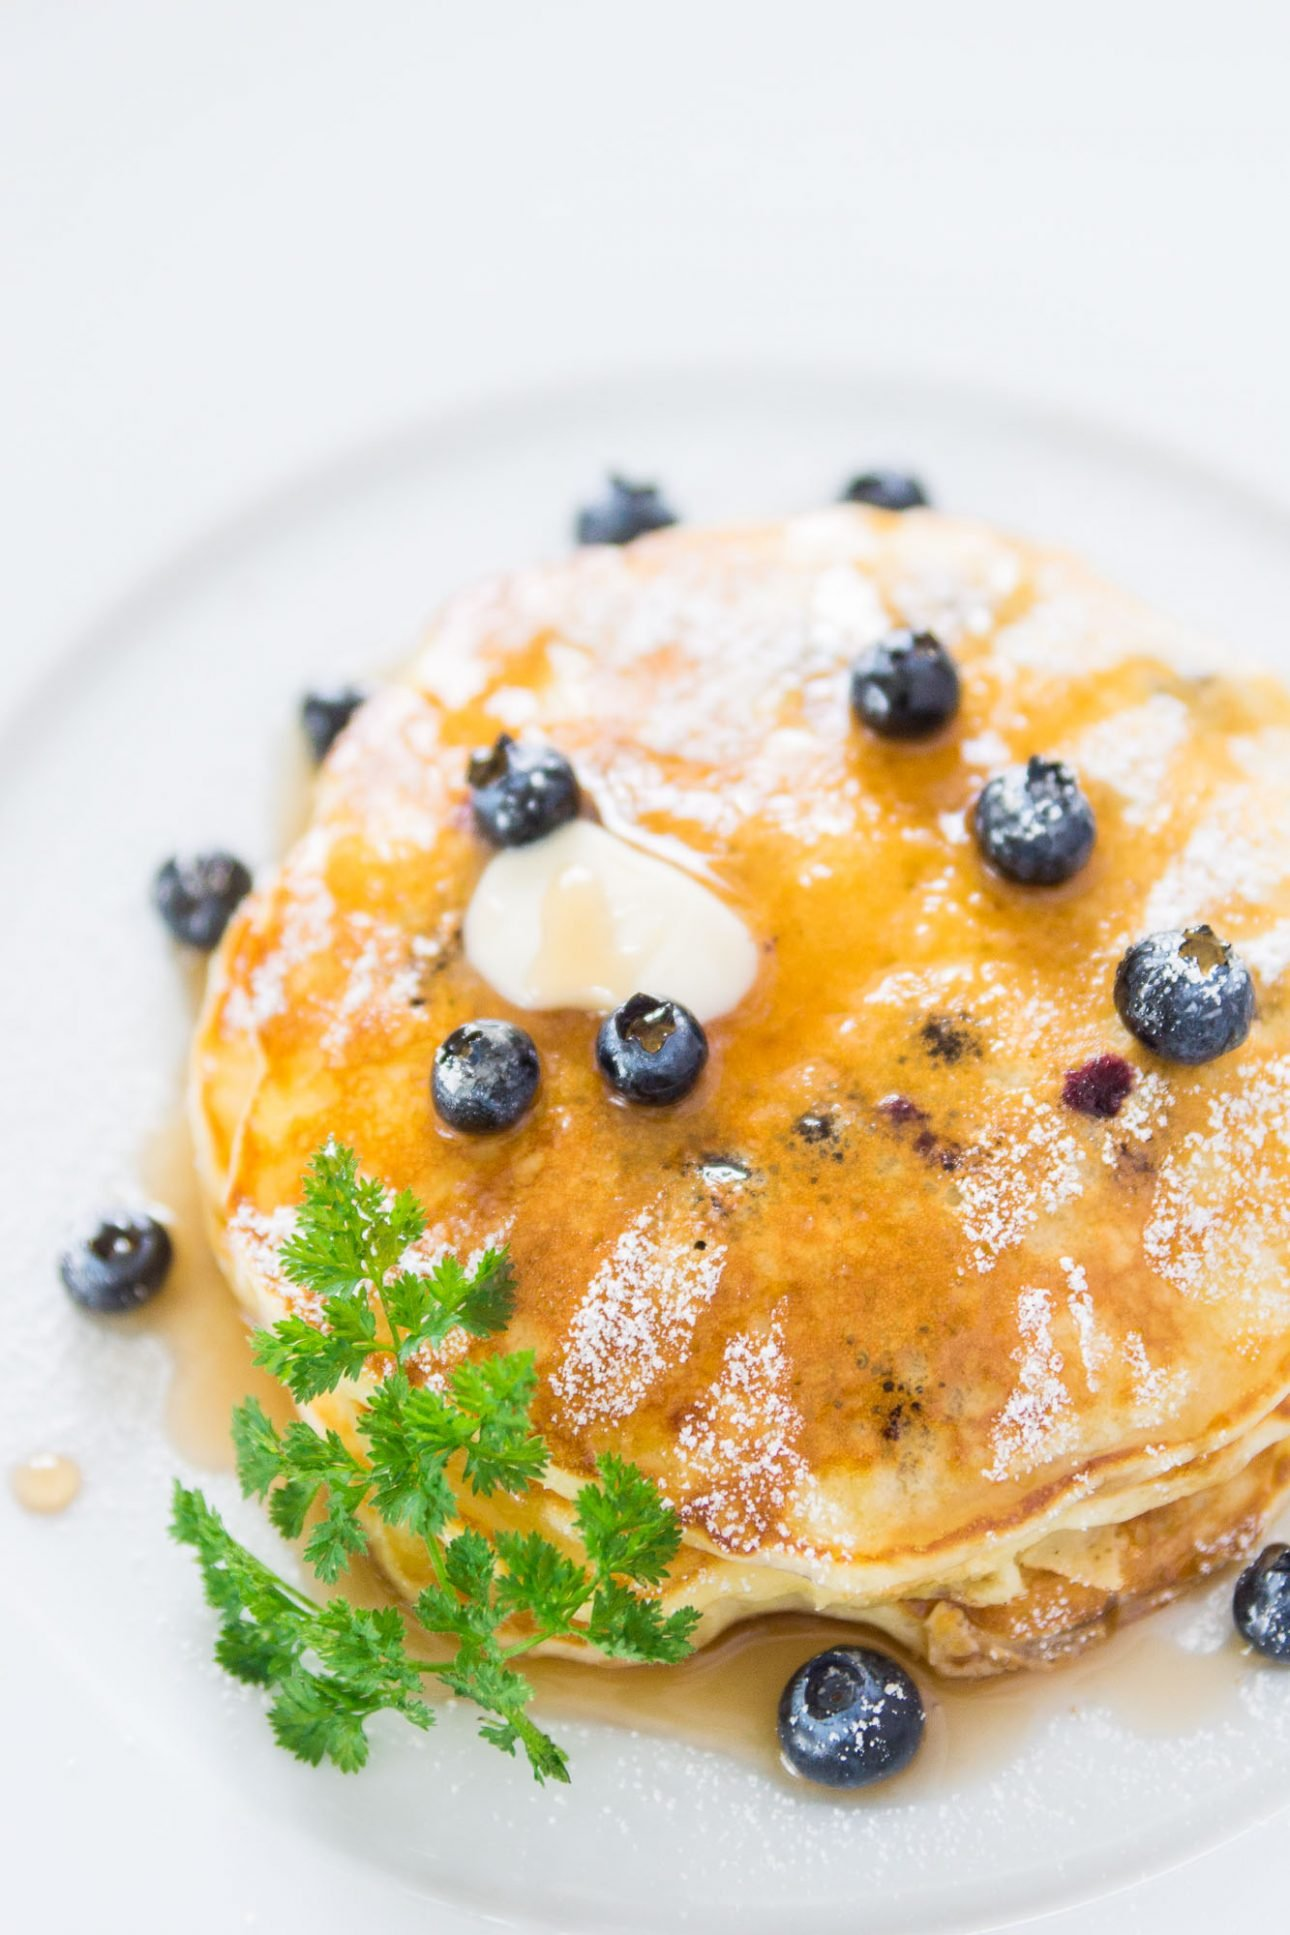 These blueberry yogurt pancakes are moist, fluffy and delicious.